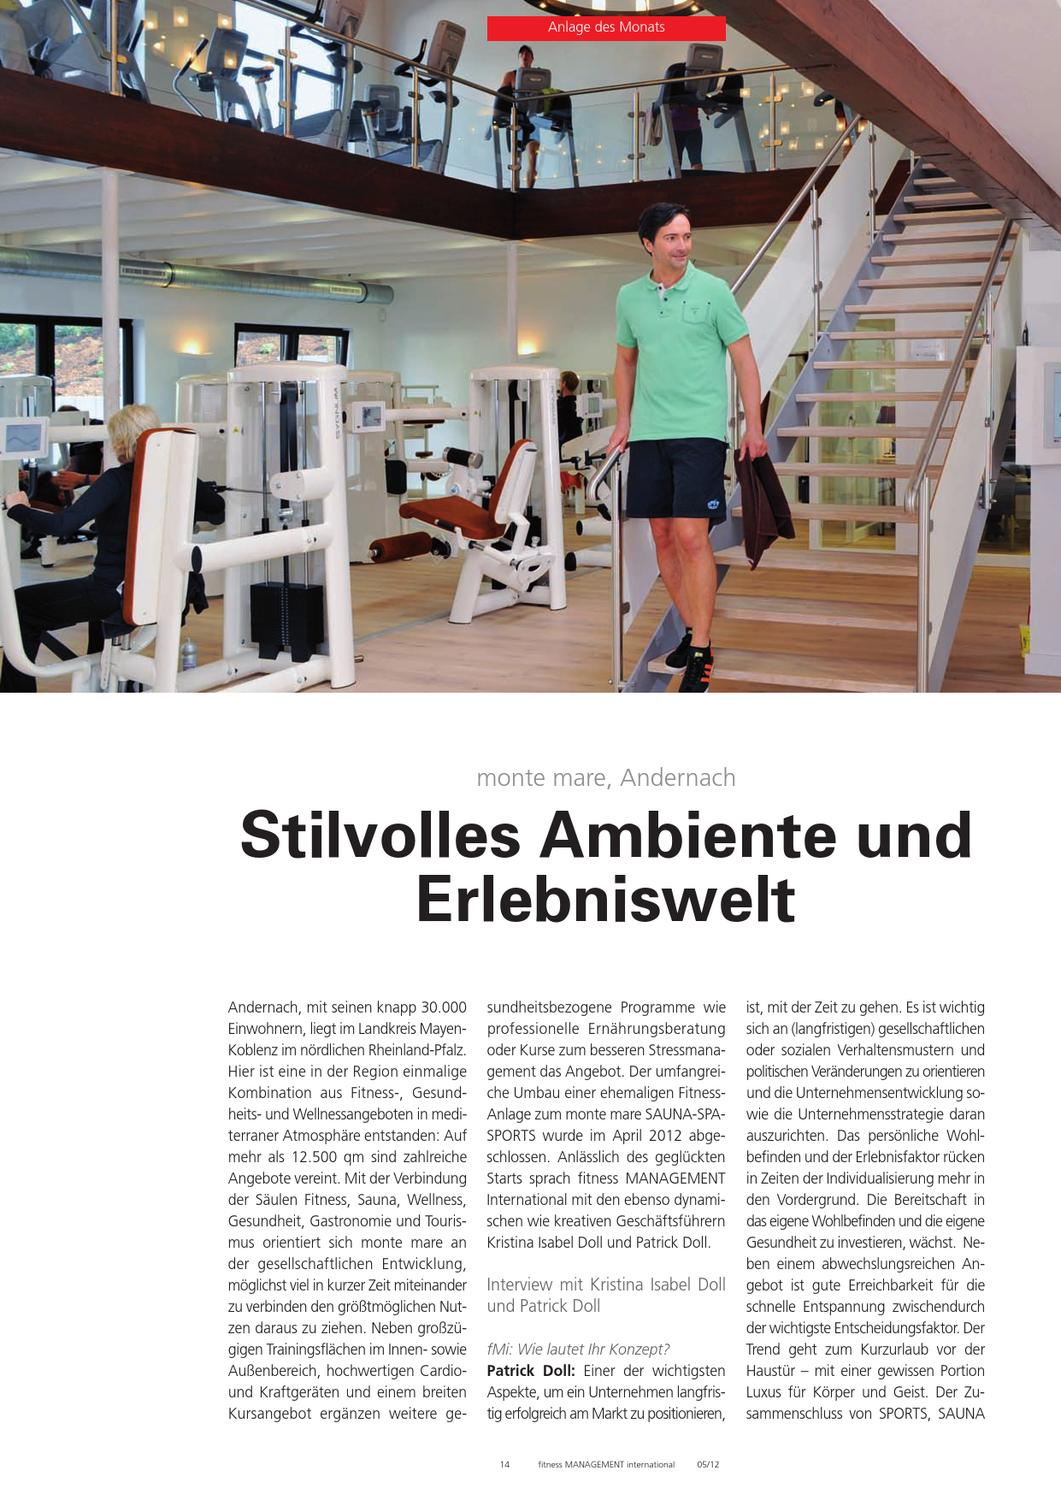 fitness Management international: Anlage des Monats - monte mare Andernach